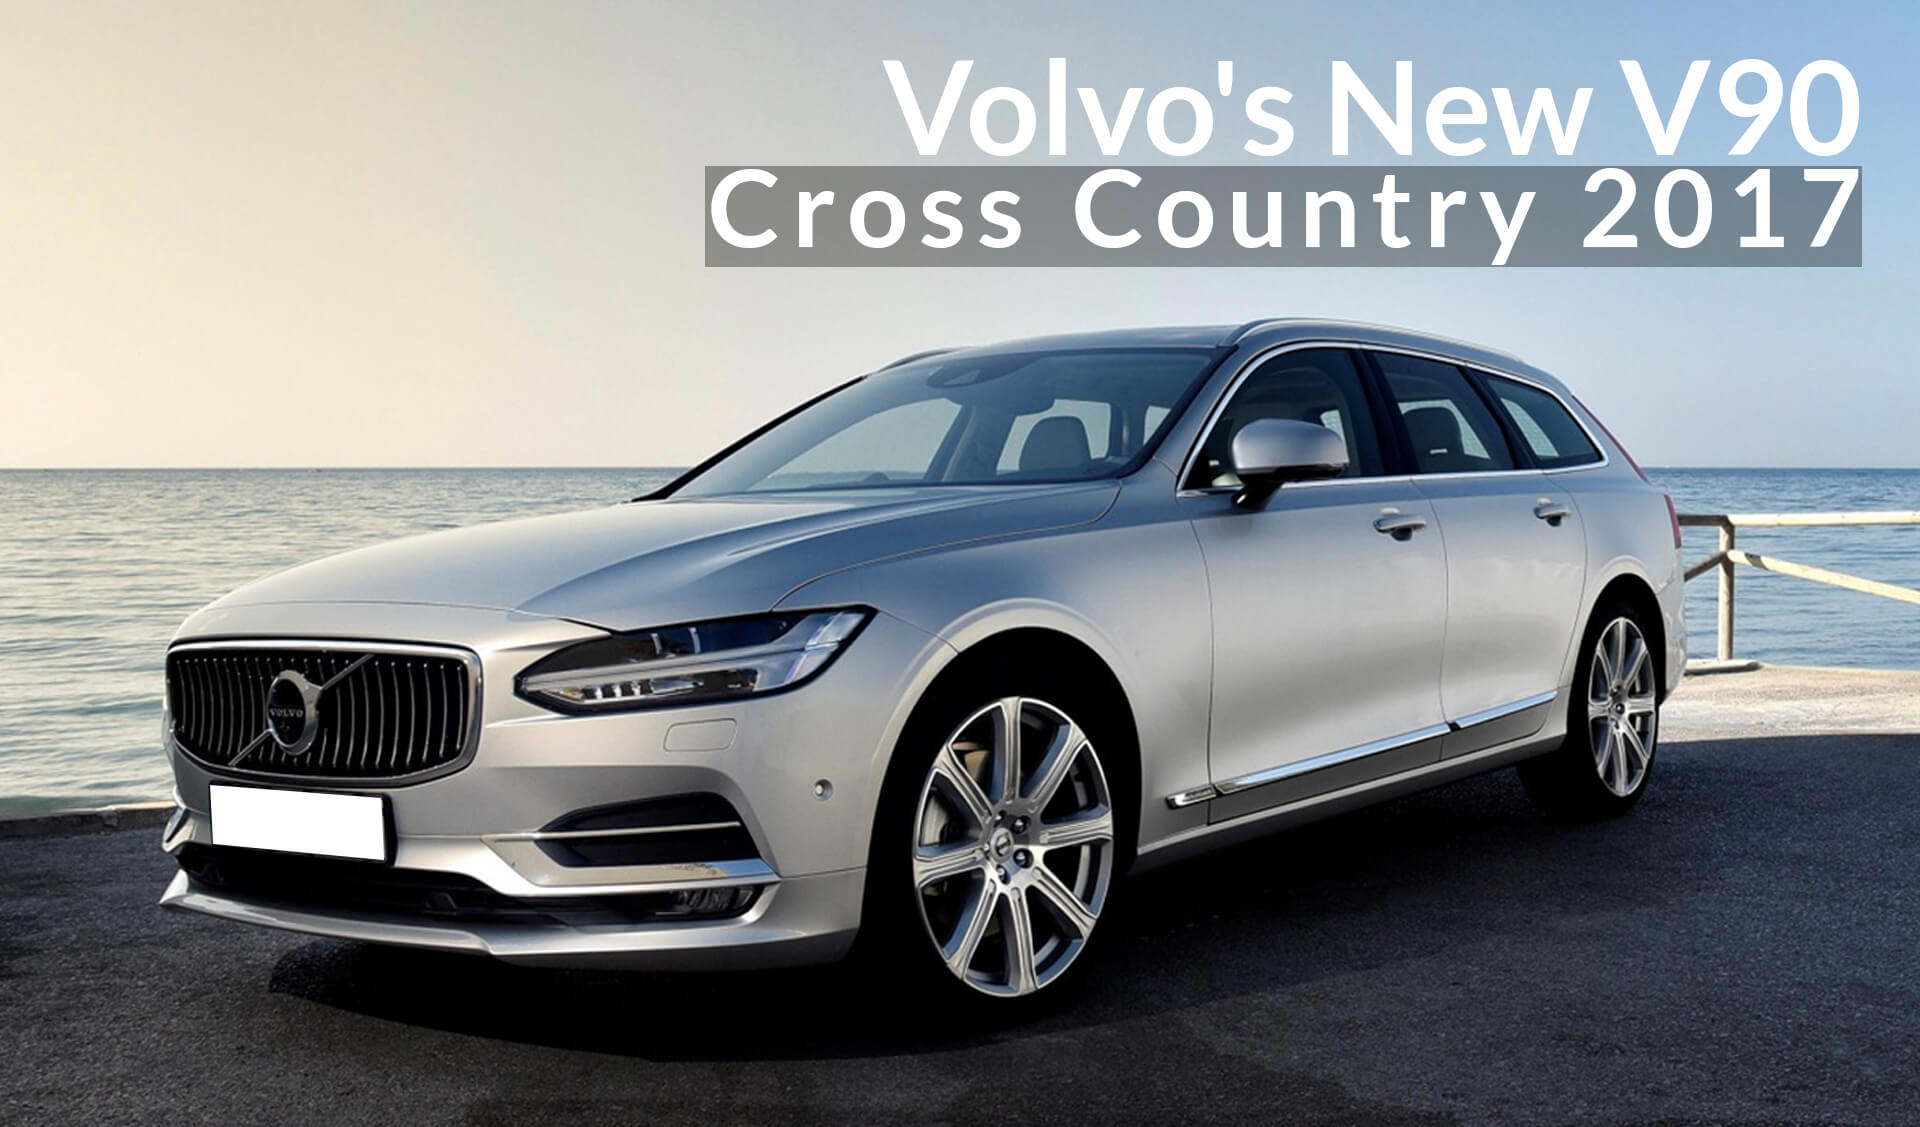 Volvo's New V90 Cross Country 2017